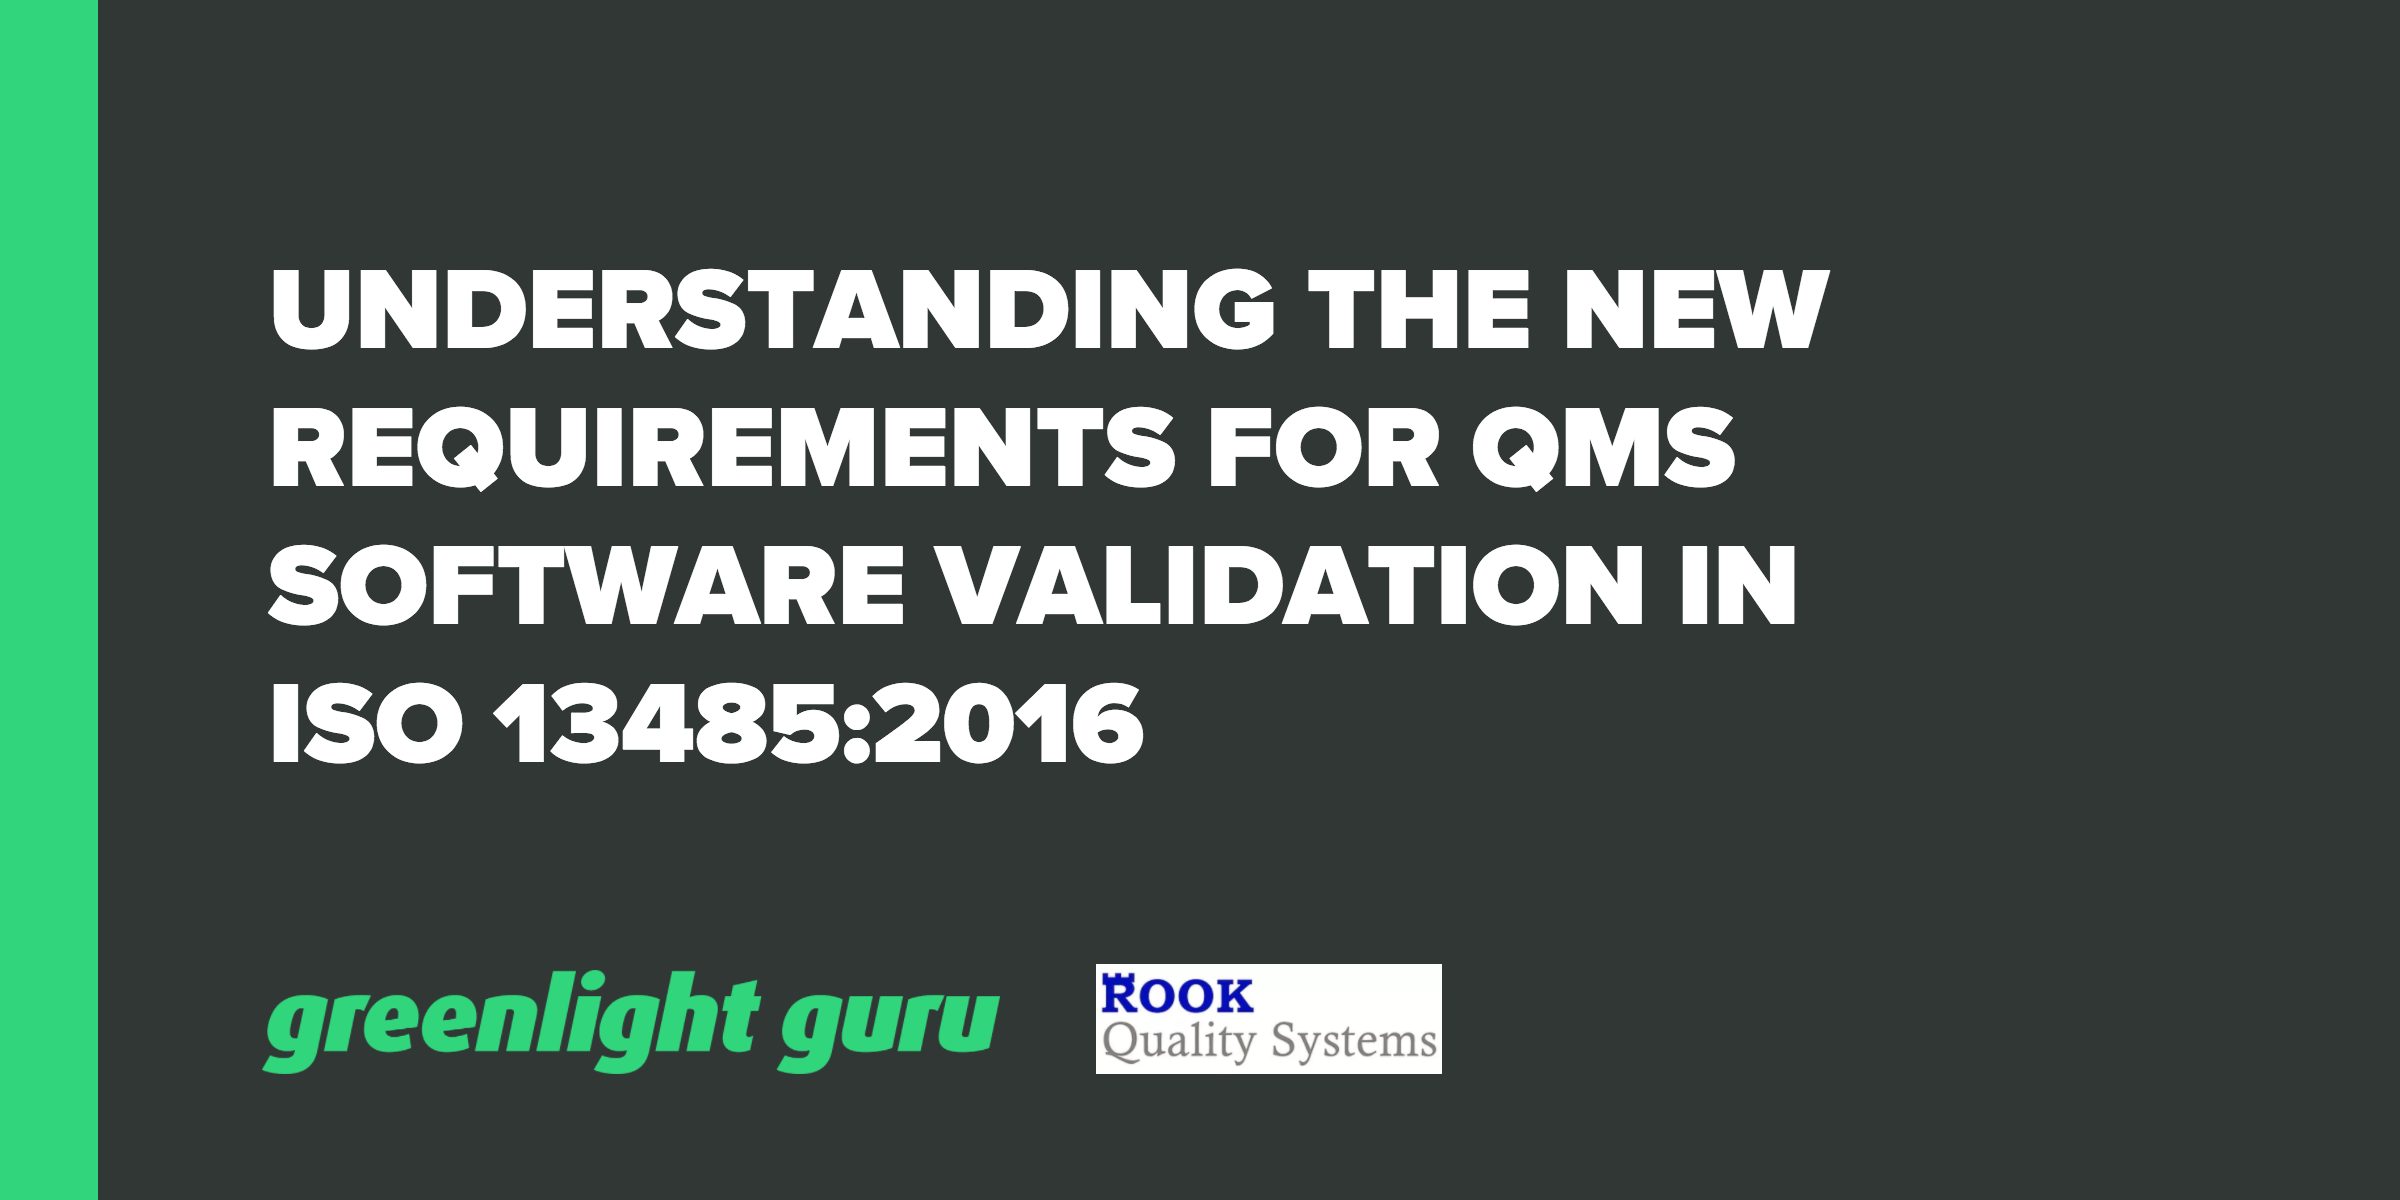 software_validation_requirements_iso_13485_2016